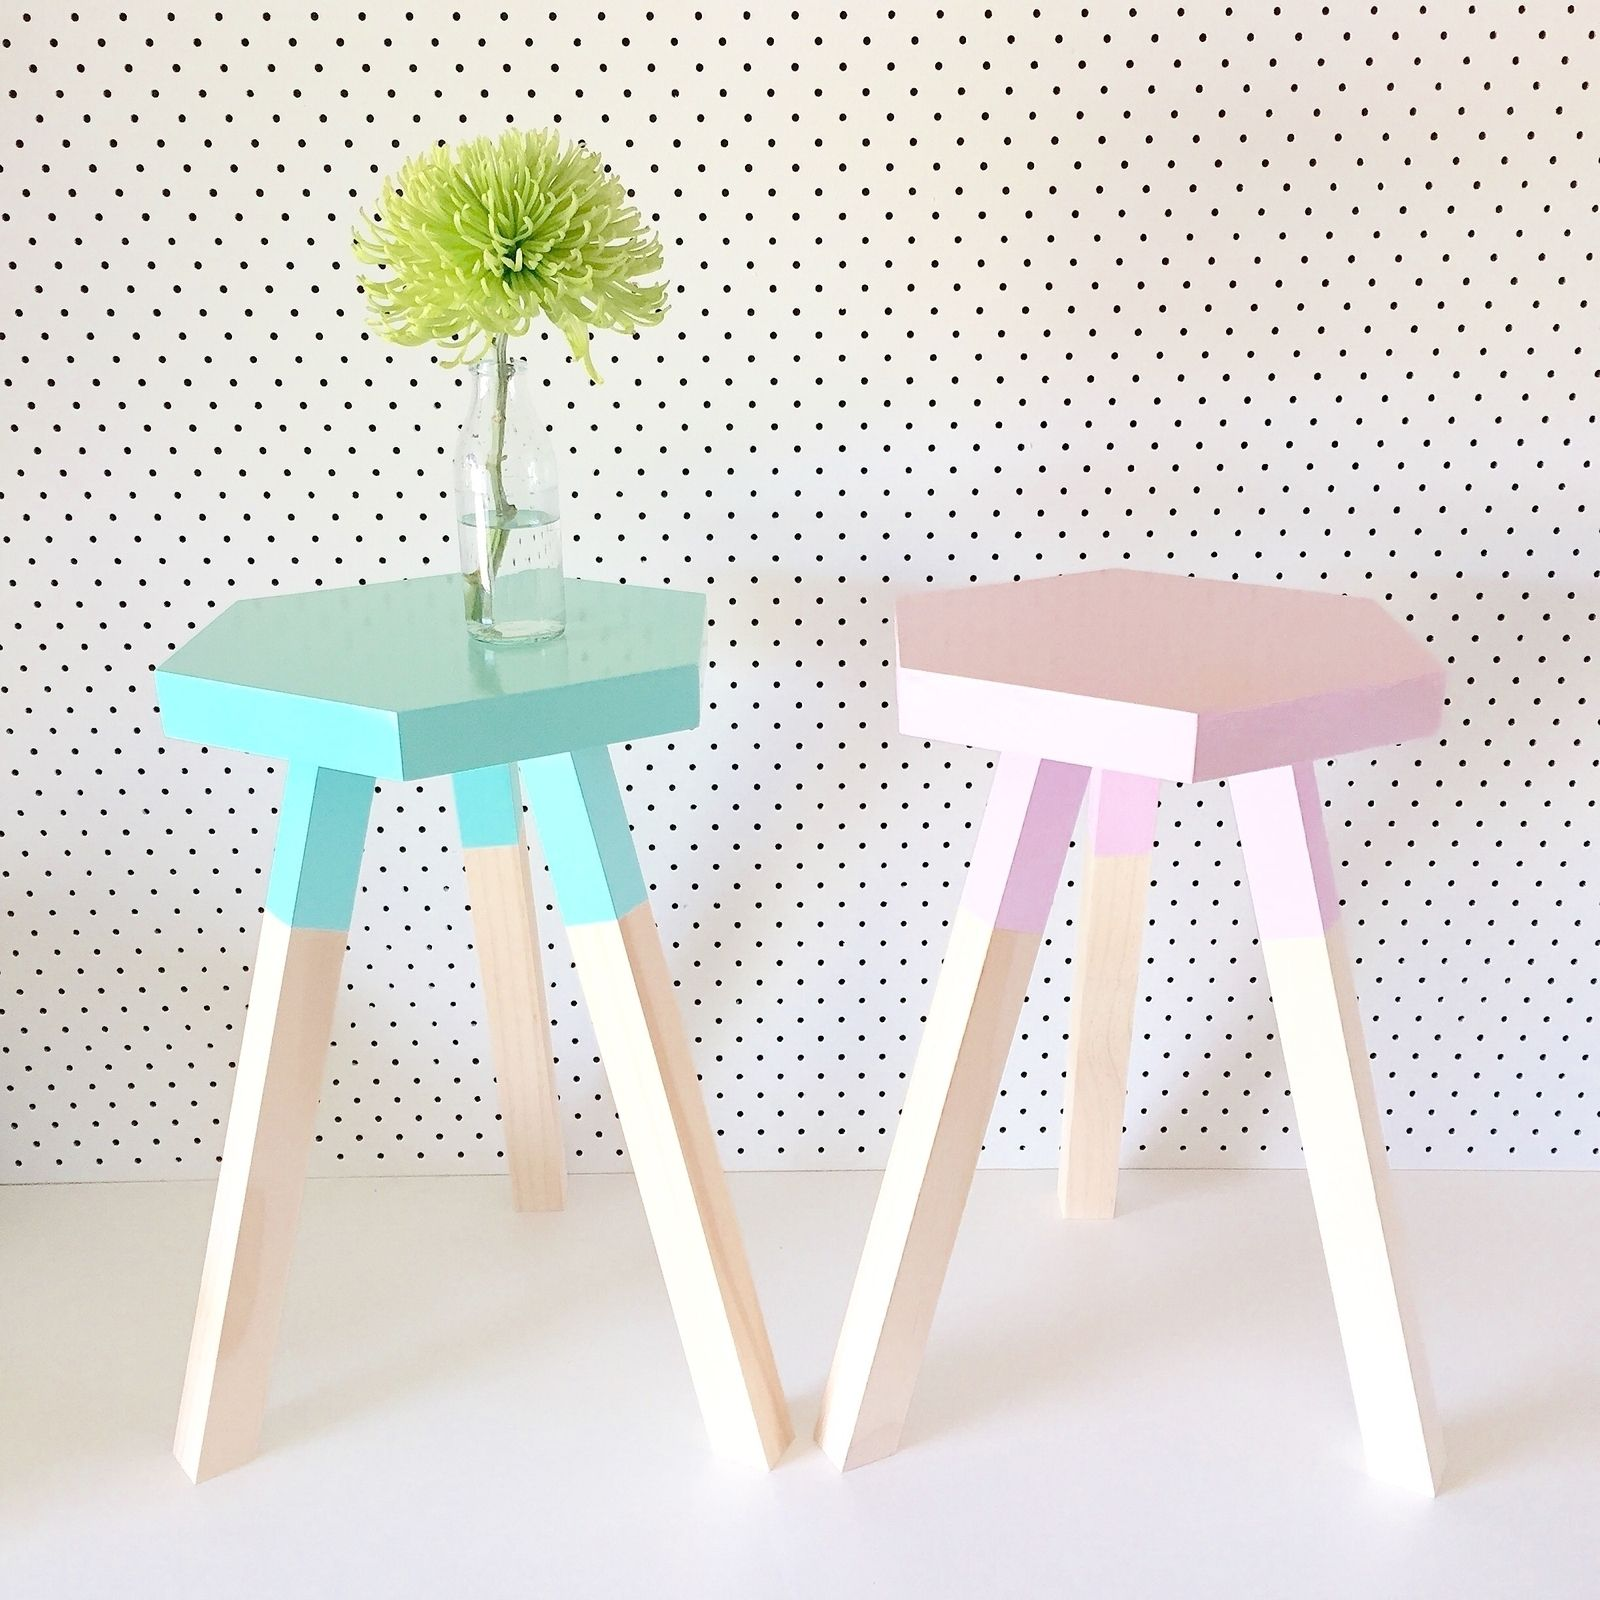 Dipped hexagon stool $75 via DTLL For the Home